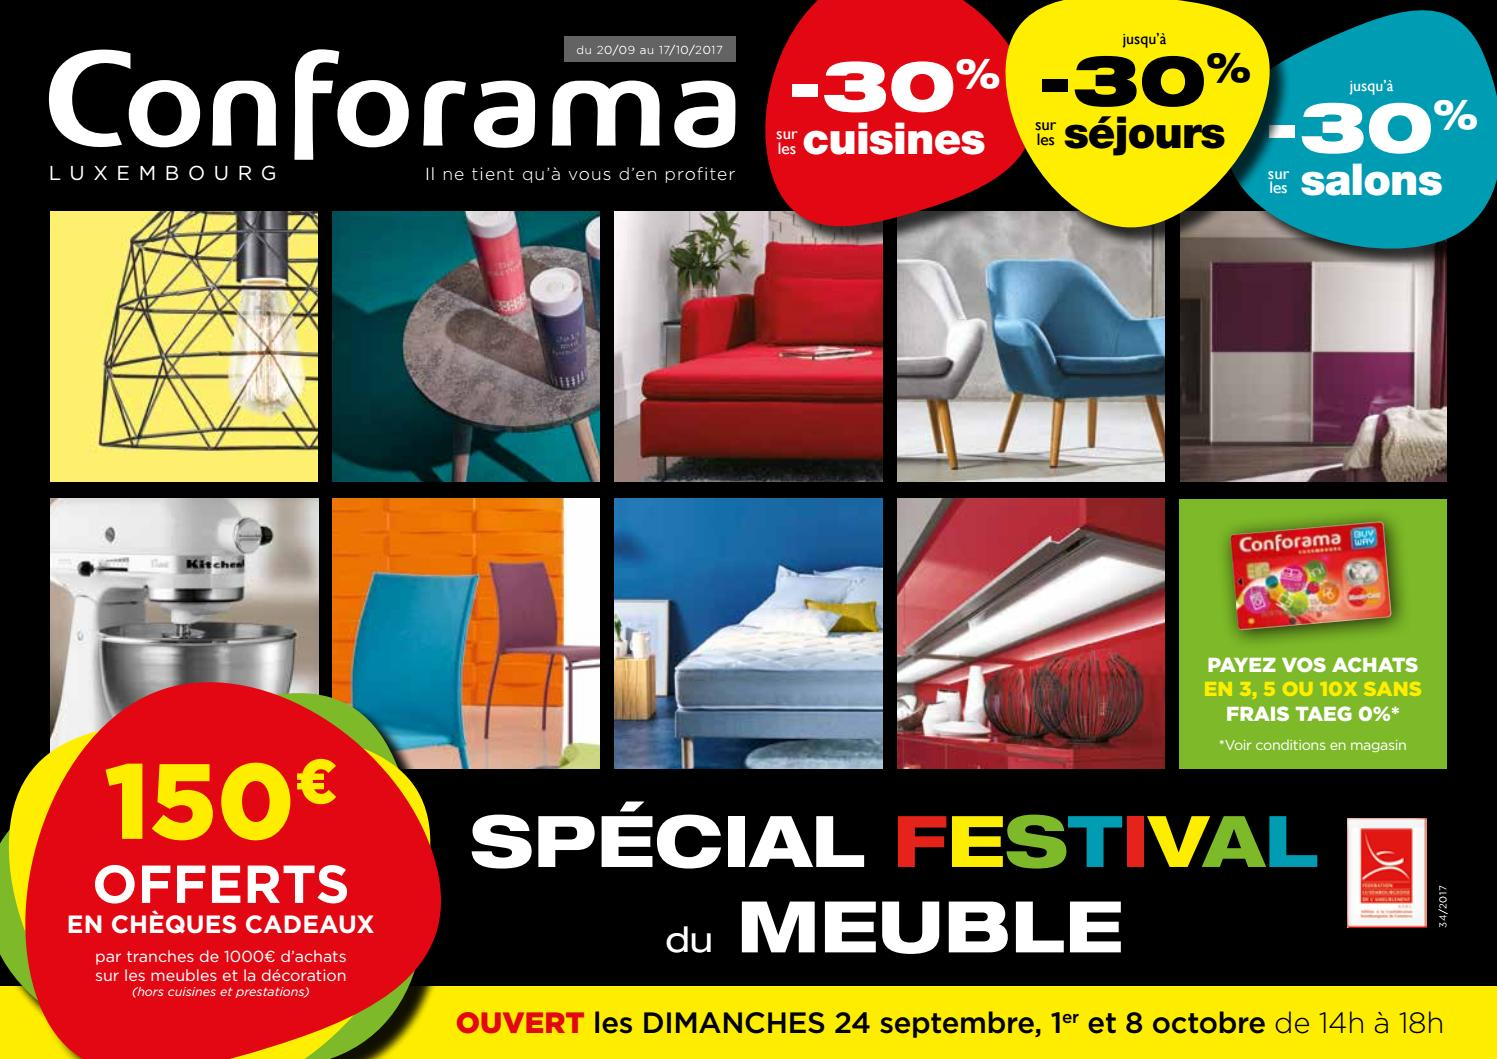 doc 34 sp cial festival du meuble by conforama luxembourg issuu. Black Bedroom Furniture Sets. Home Design Ideas